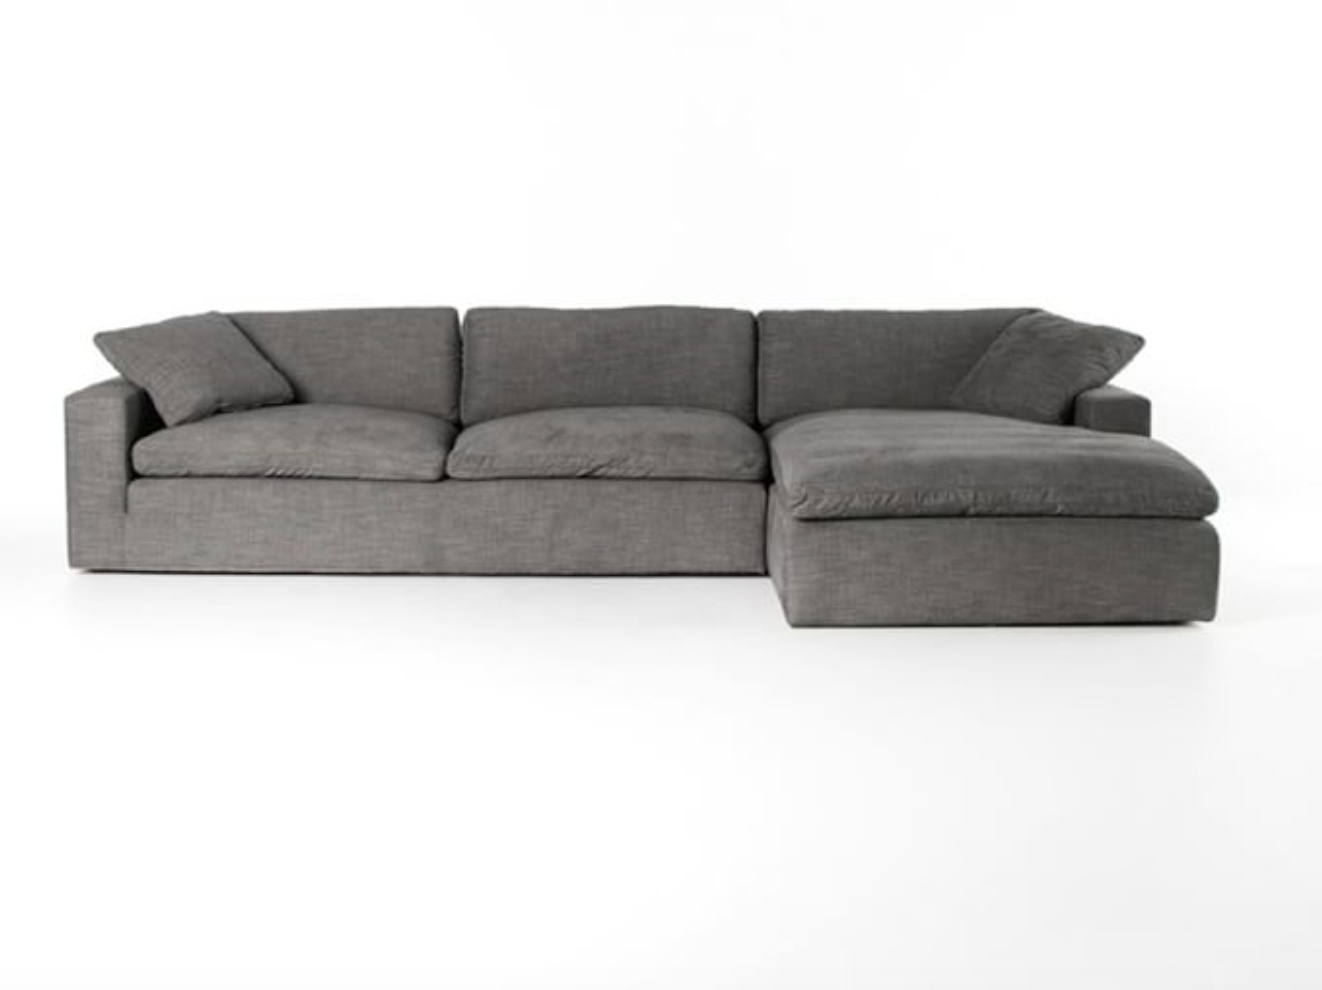 Milo Upholstered Sofa Chaise Sectional, Dupes for the Restoration Hardware cloud couch, RH cloud couch dupes, affordable versions of the Restoration Hardware cloud couch, modular sofa dupes, restoration hardware cloud sofa, CLOUD MODULAR SOFA CHAISE SECTIONAL, restoration hardware dupes, affordable sectional sofas, Red Soles and Red Wine, Jennifer Worman